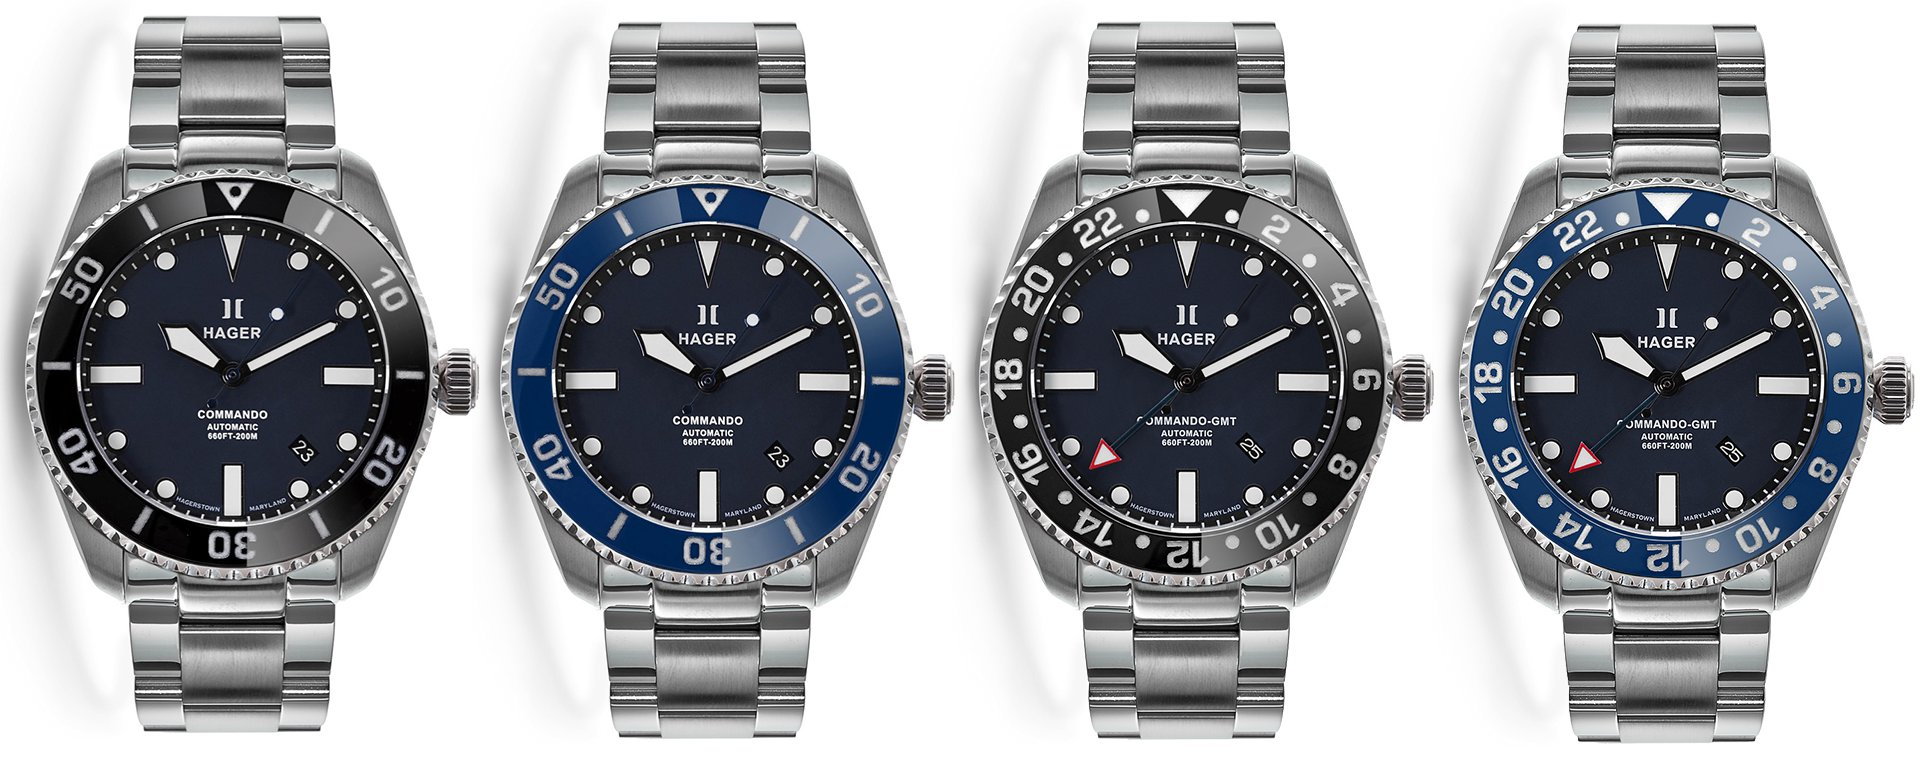 Wonderful Watches from Hager